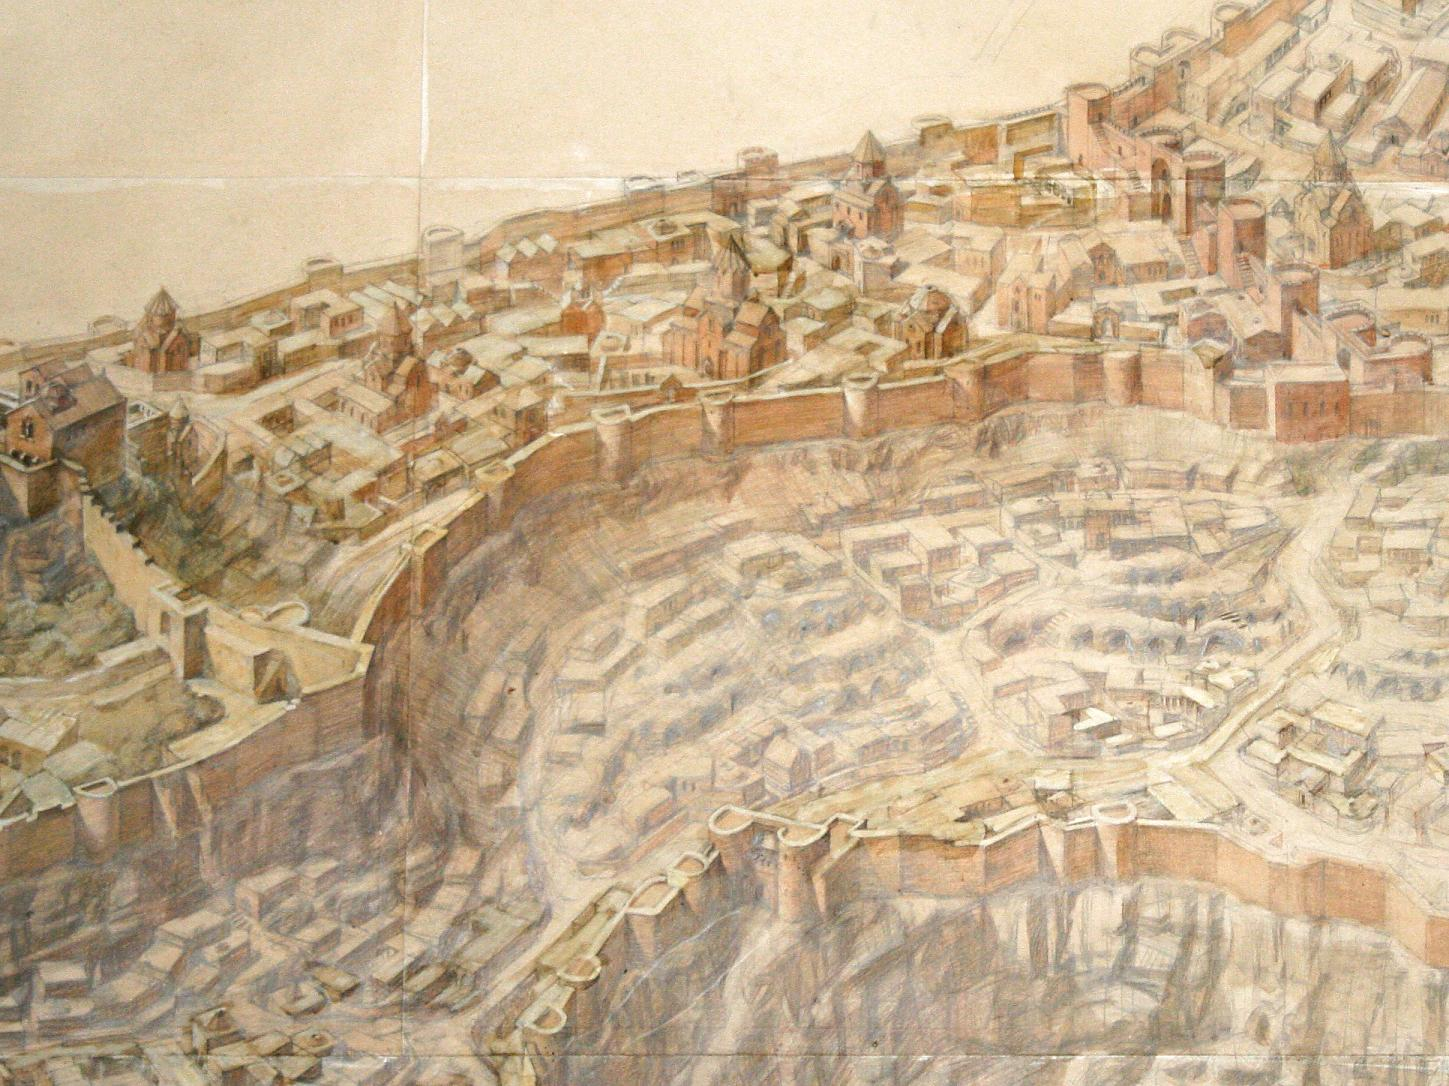 bff0a10d0f Armenian Architecture - VirtualANI - A Drawing Depicting a Reconstruction  of Ani